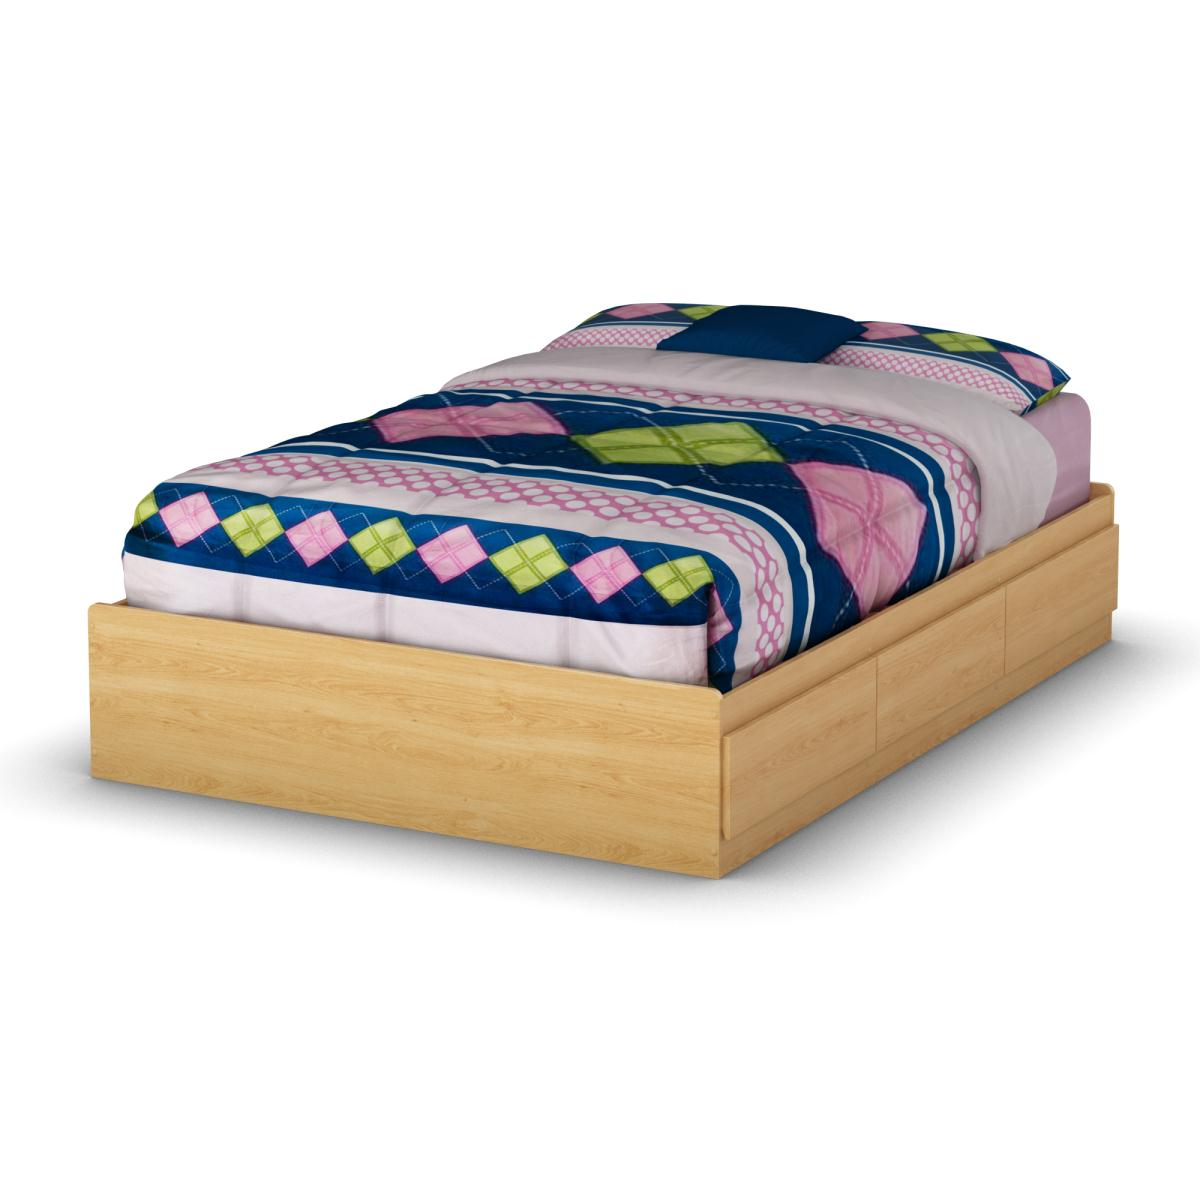 South Shore Popular Full Mates Bed - Natural Maple